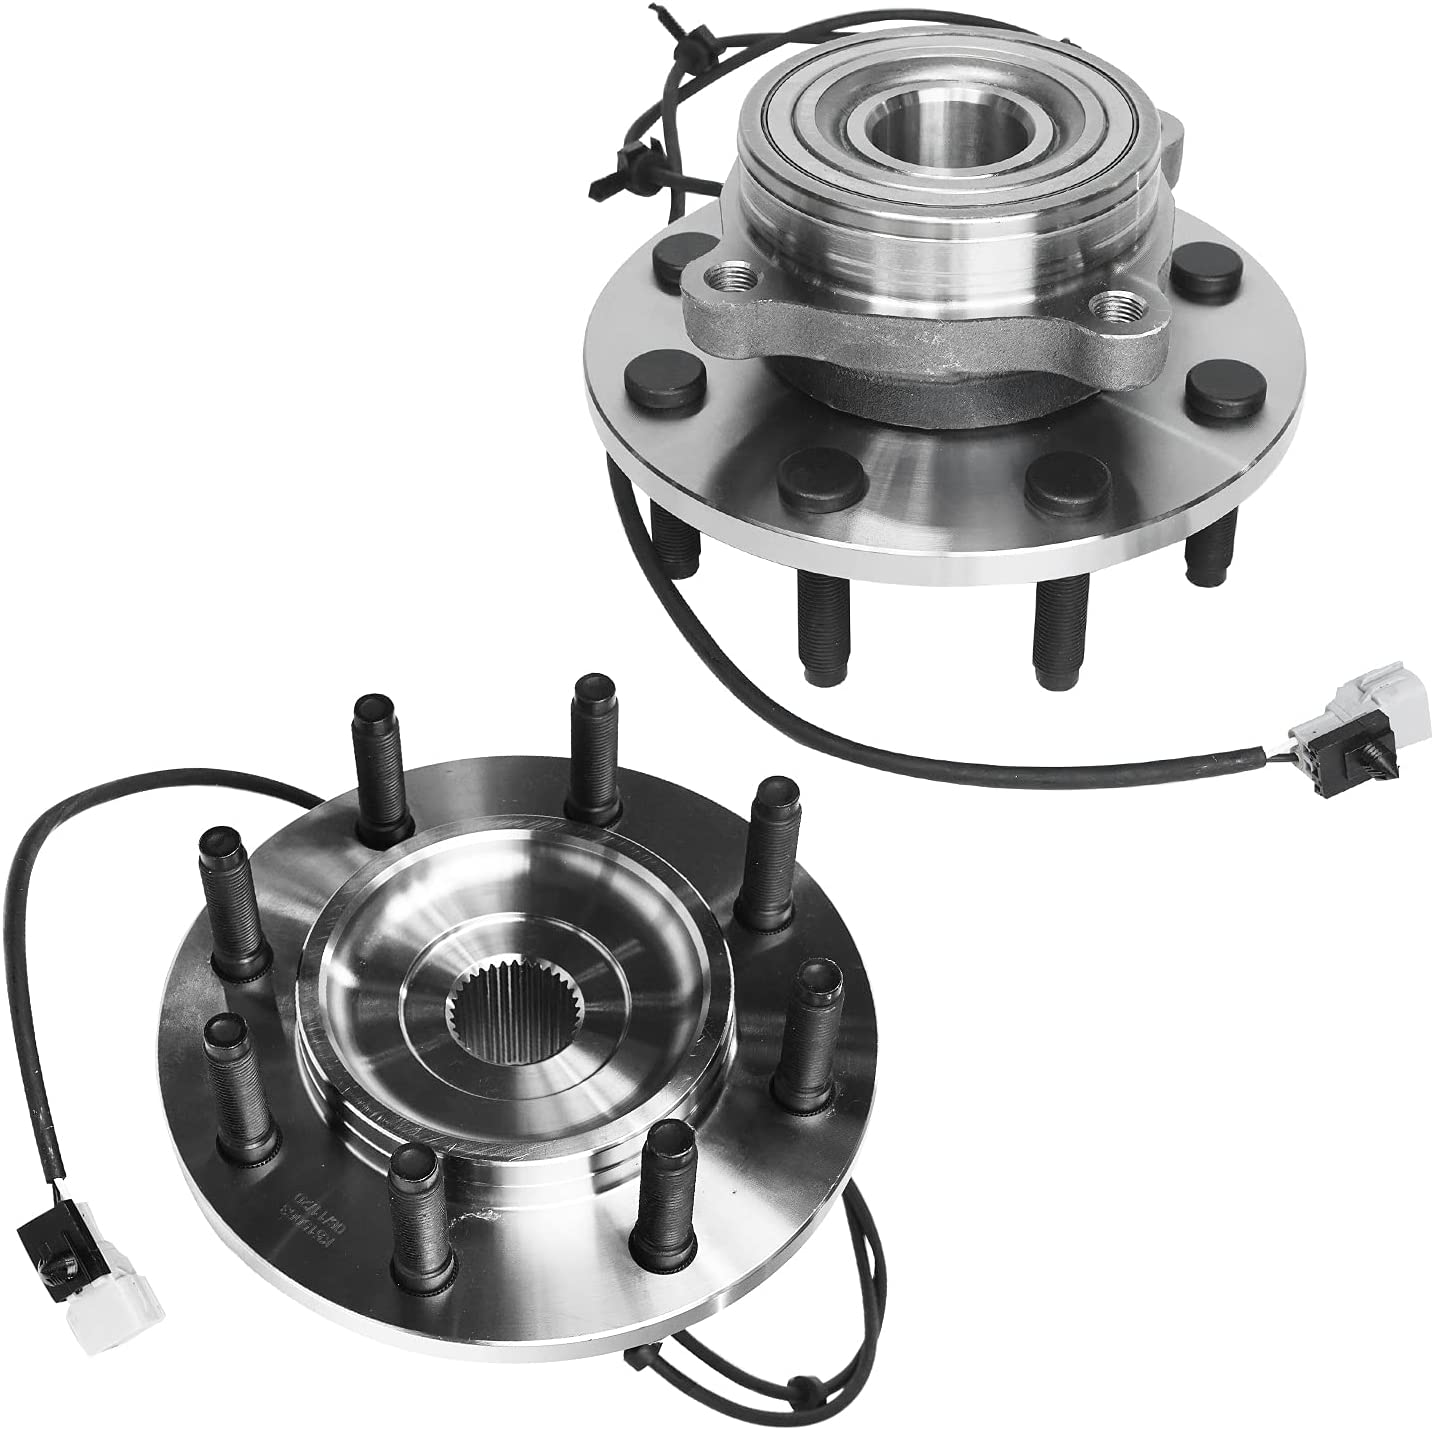 Detroit Axle - 4WD Front New Max 45% OFF color Wheel Bearing Assembly And Replacem Hub